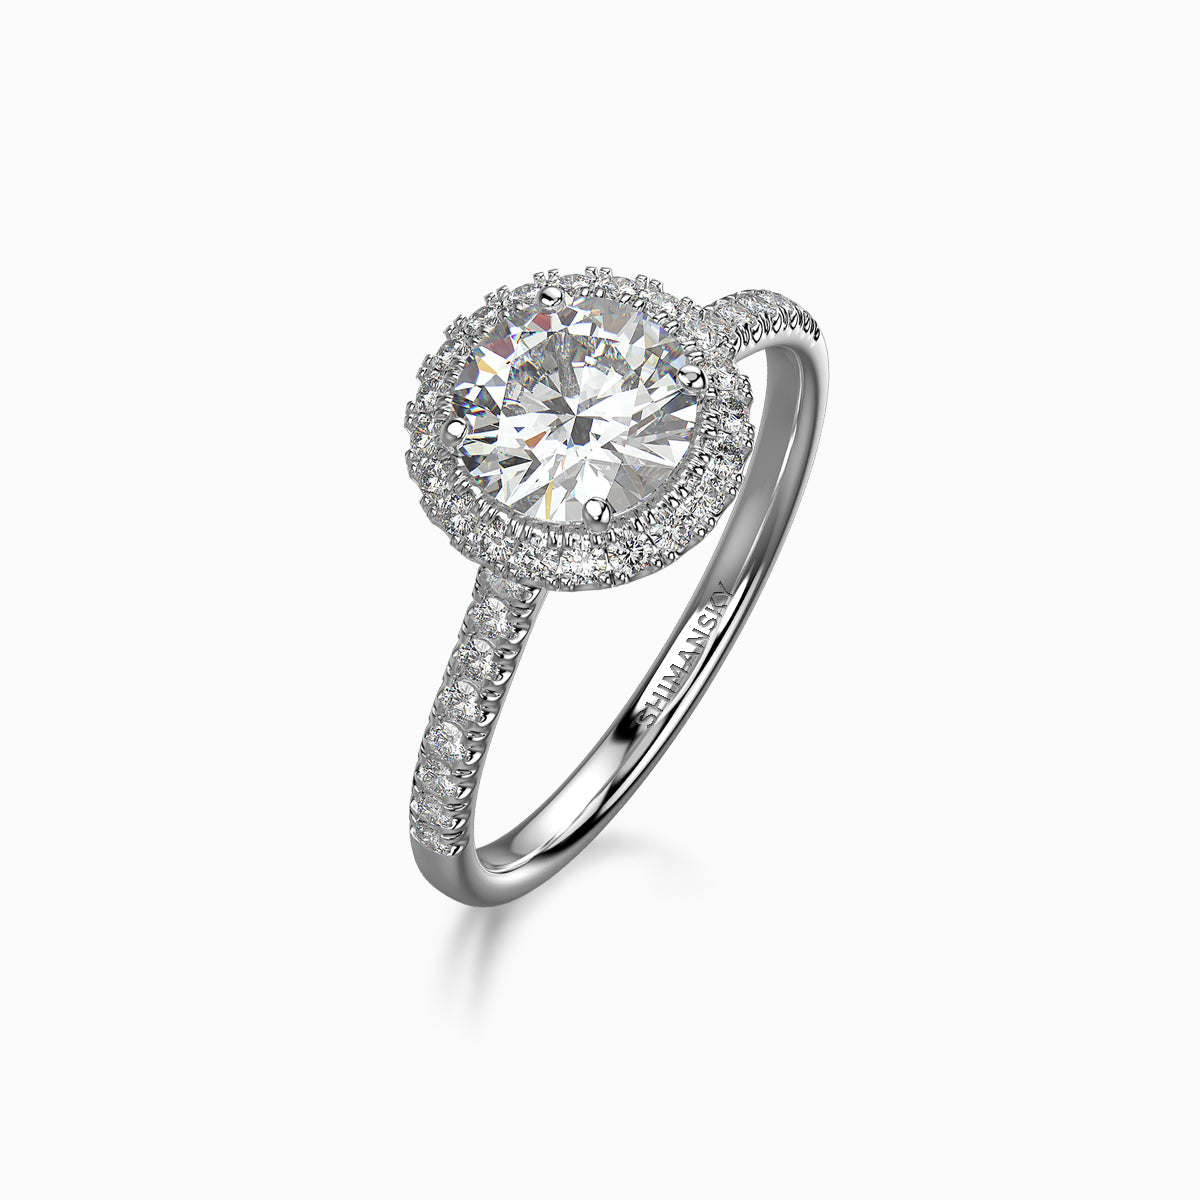 Round Brilliant Halo Ring in Platinum Set With Diamonds